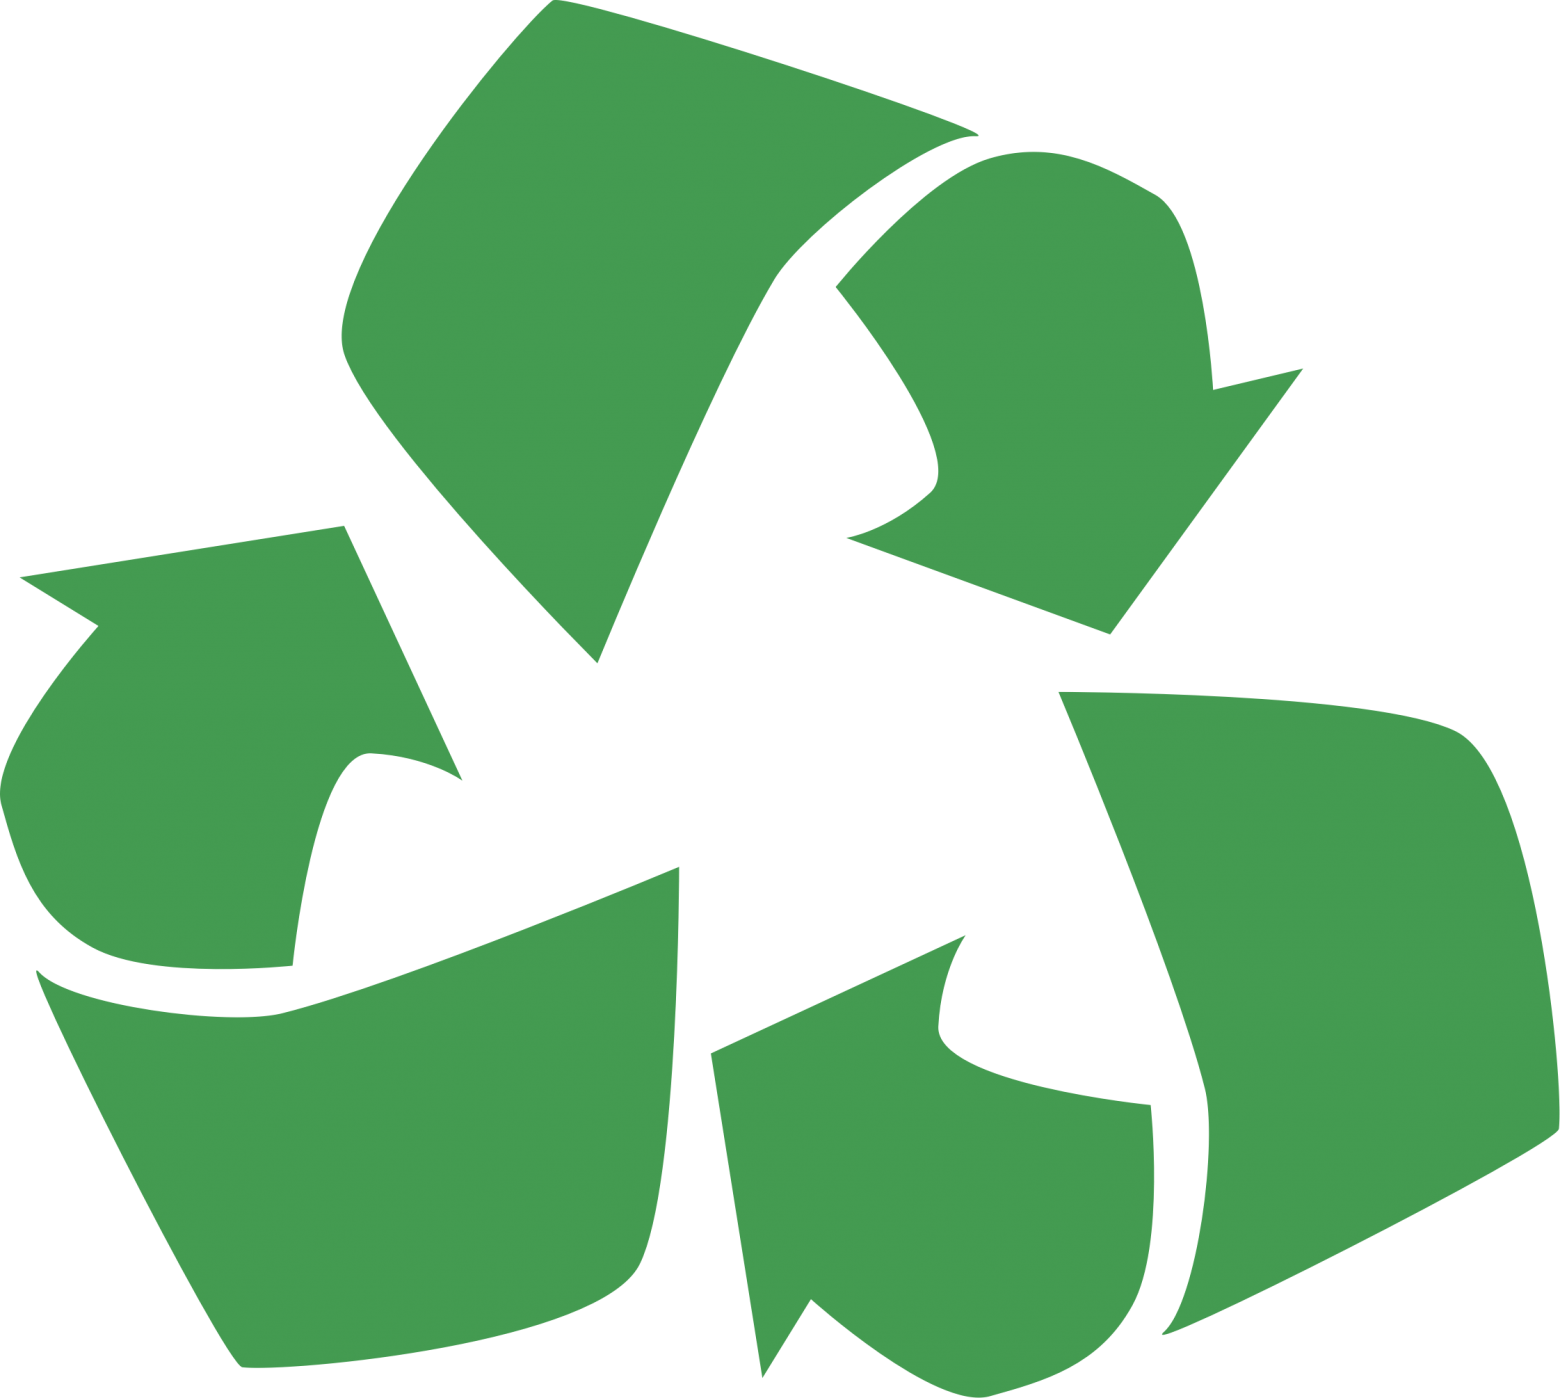 Logo recyclage png 7 » PNG Image.